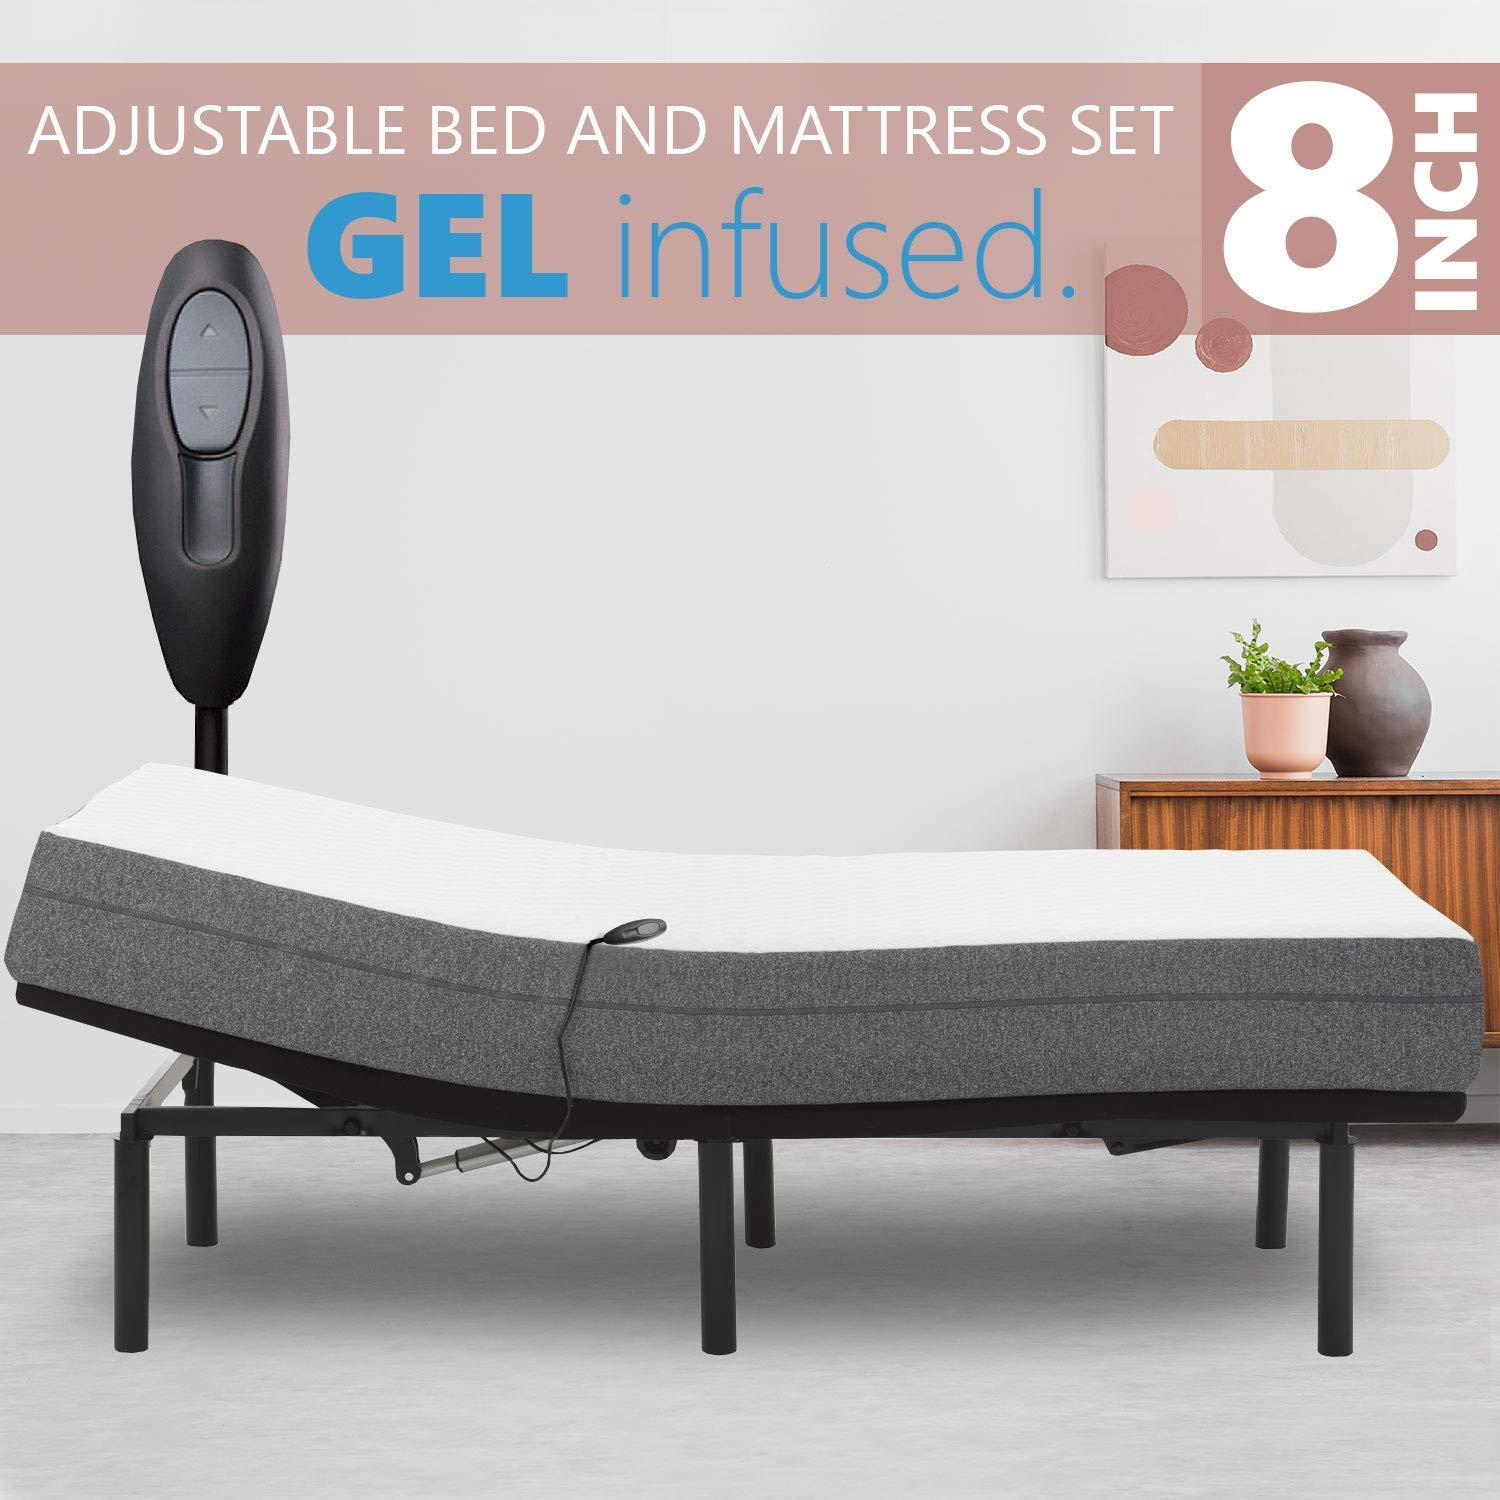 Blissful Nights Adjustable Bed Frame with 8 inch Firm Gel Infused Memory Foam Mattress